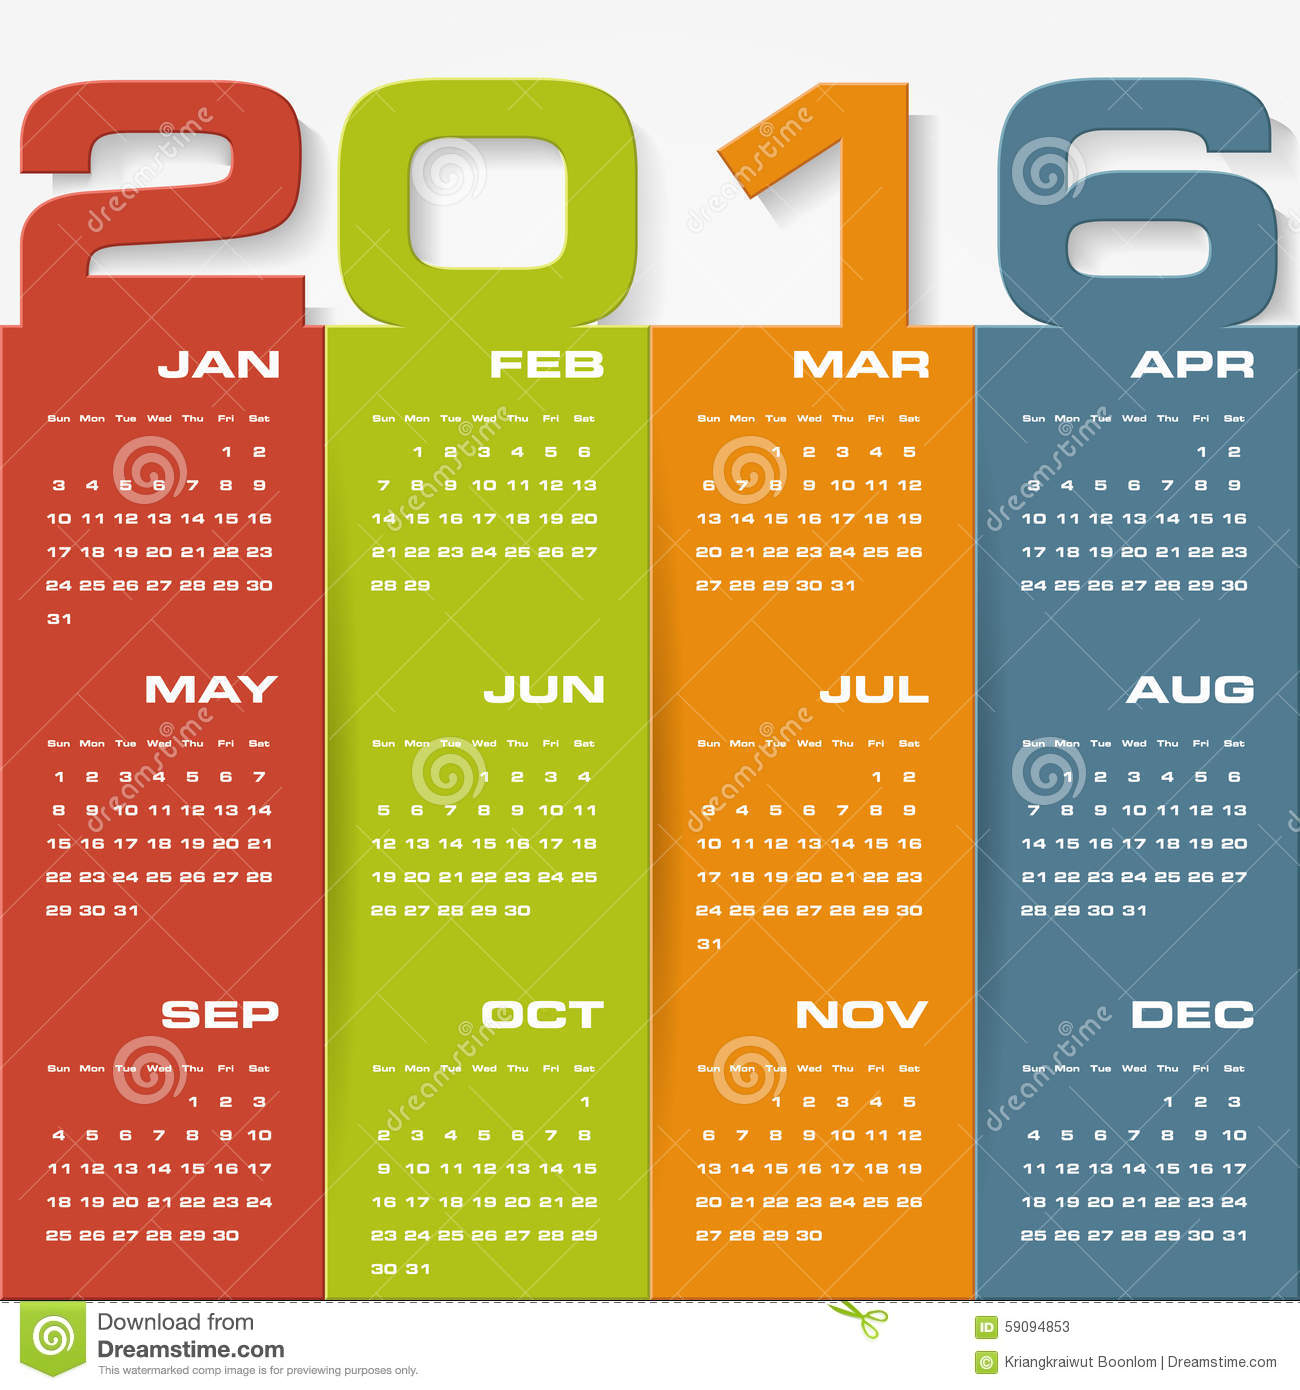 Calendar Design Free Vector : Simple design calendar year vector template